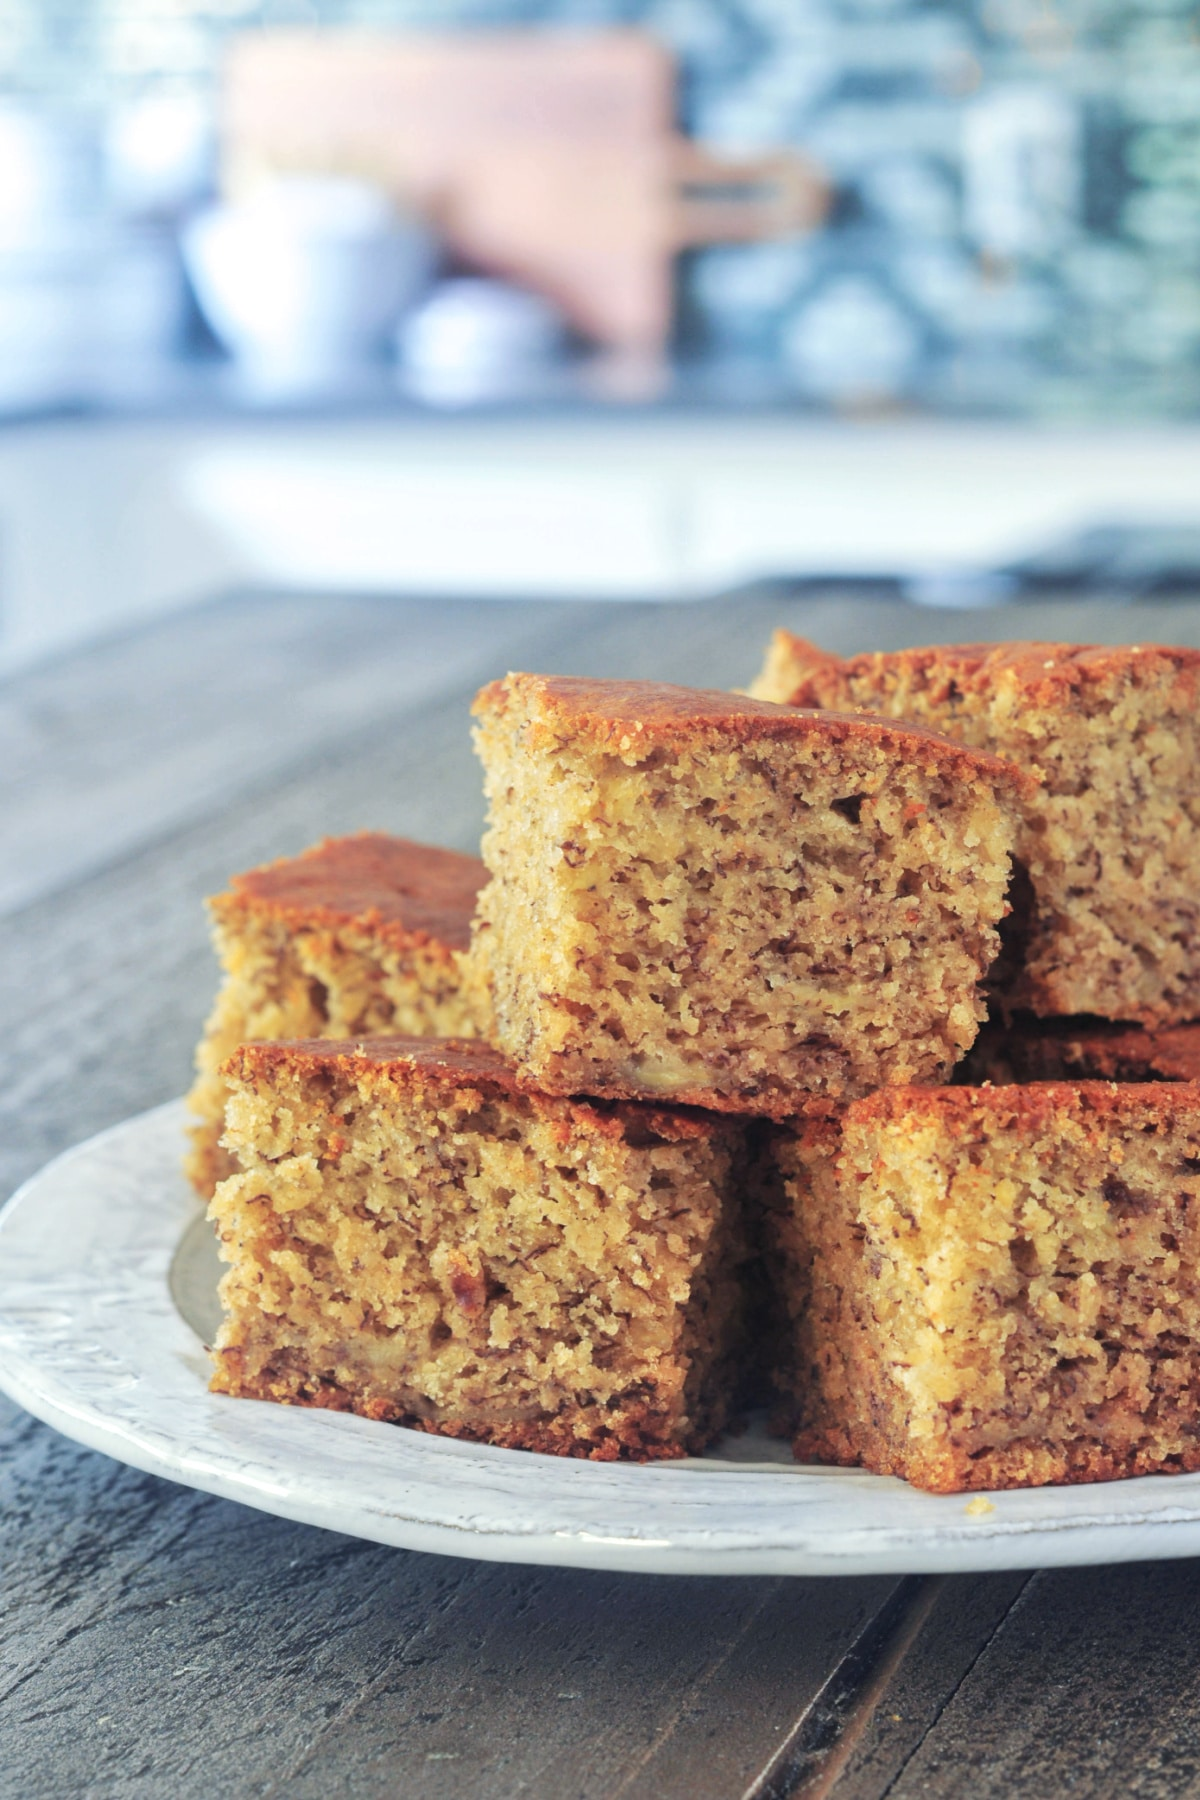 squares of banana snack cake stacked on a rustic dish, on a wooden table against a blurred kitchen background.